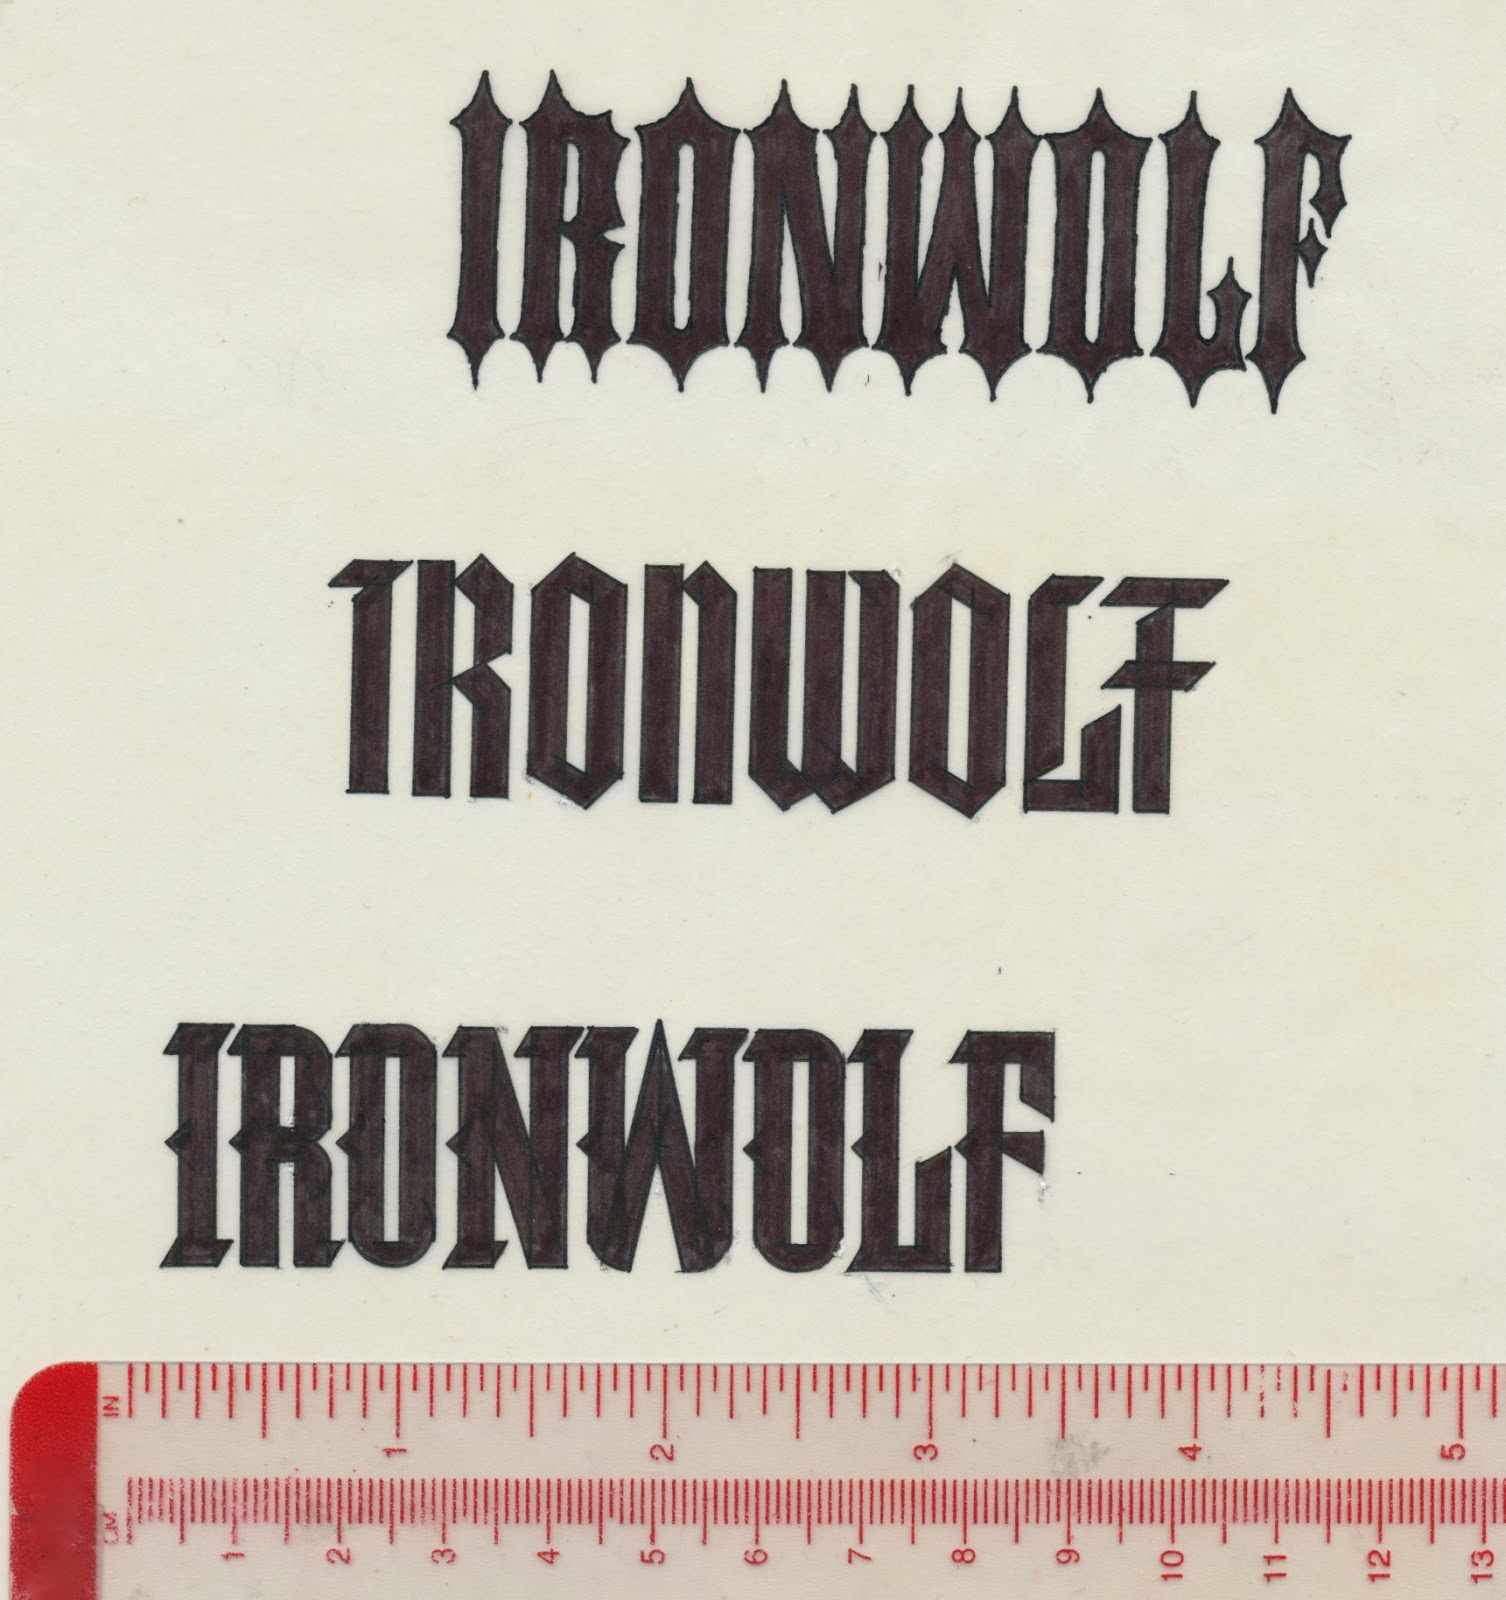 Tenth Letter of the Alphabet Anatomy of a Logo Ironwolf – Wanted Poster Letters